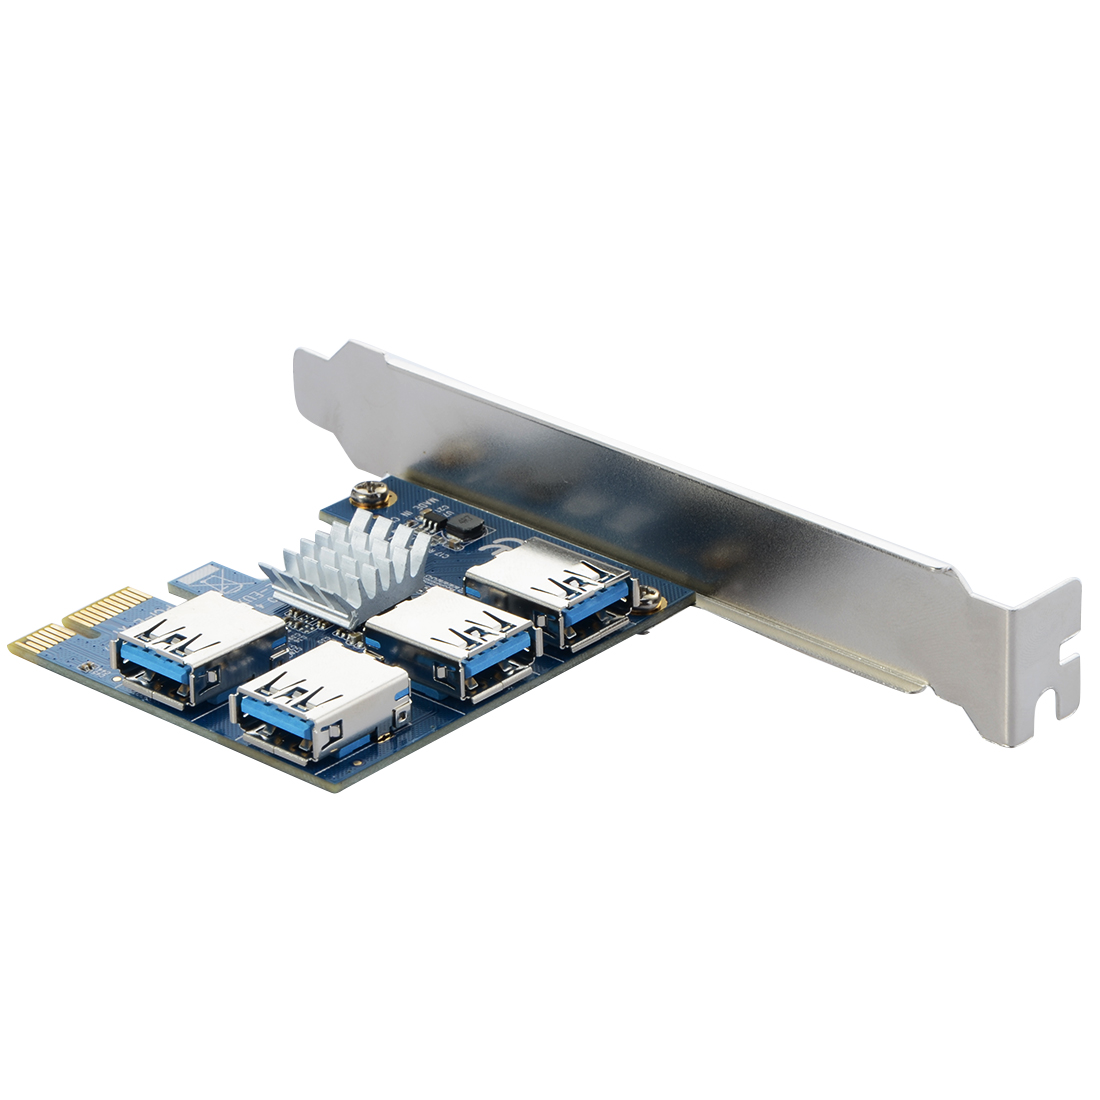 New 4 Slots PCI-E 1 to 4 PCI Express 16X Slot External Riser Card Adapter Board P15 new pci e 1x expansion kit 1 to 3 ports and to 4 pci express witch multiplier expander hub riser expansion card xxm